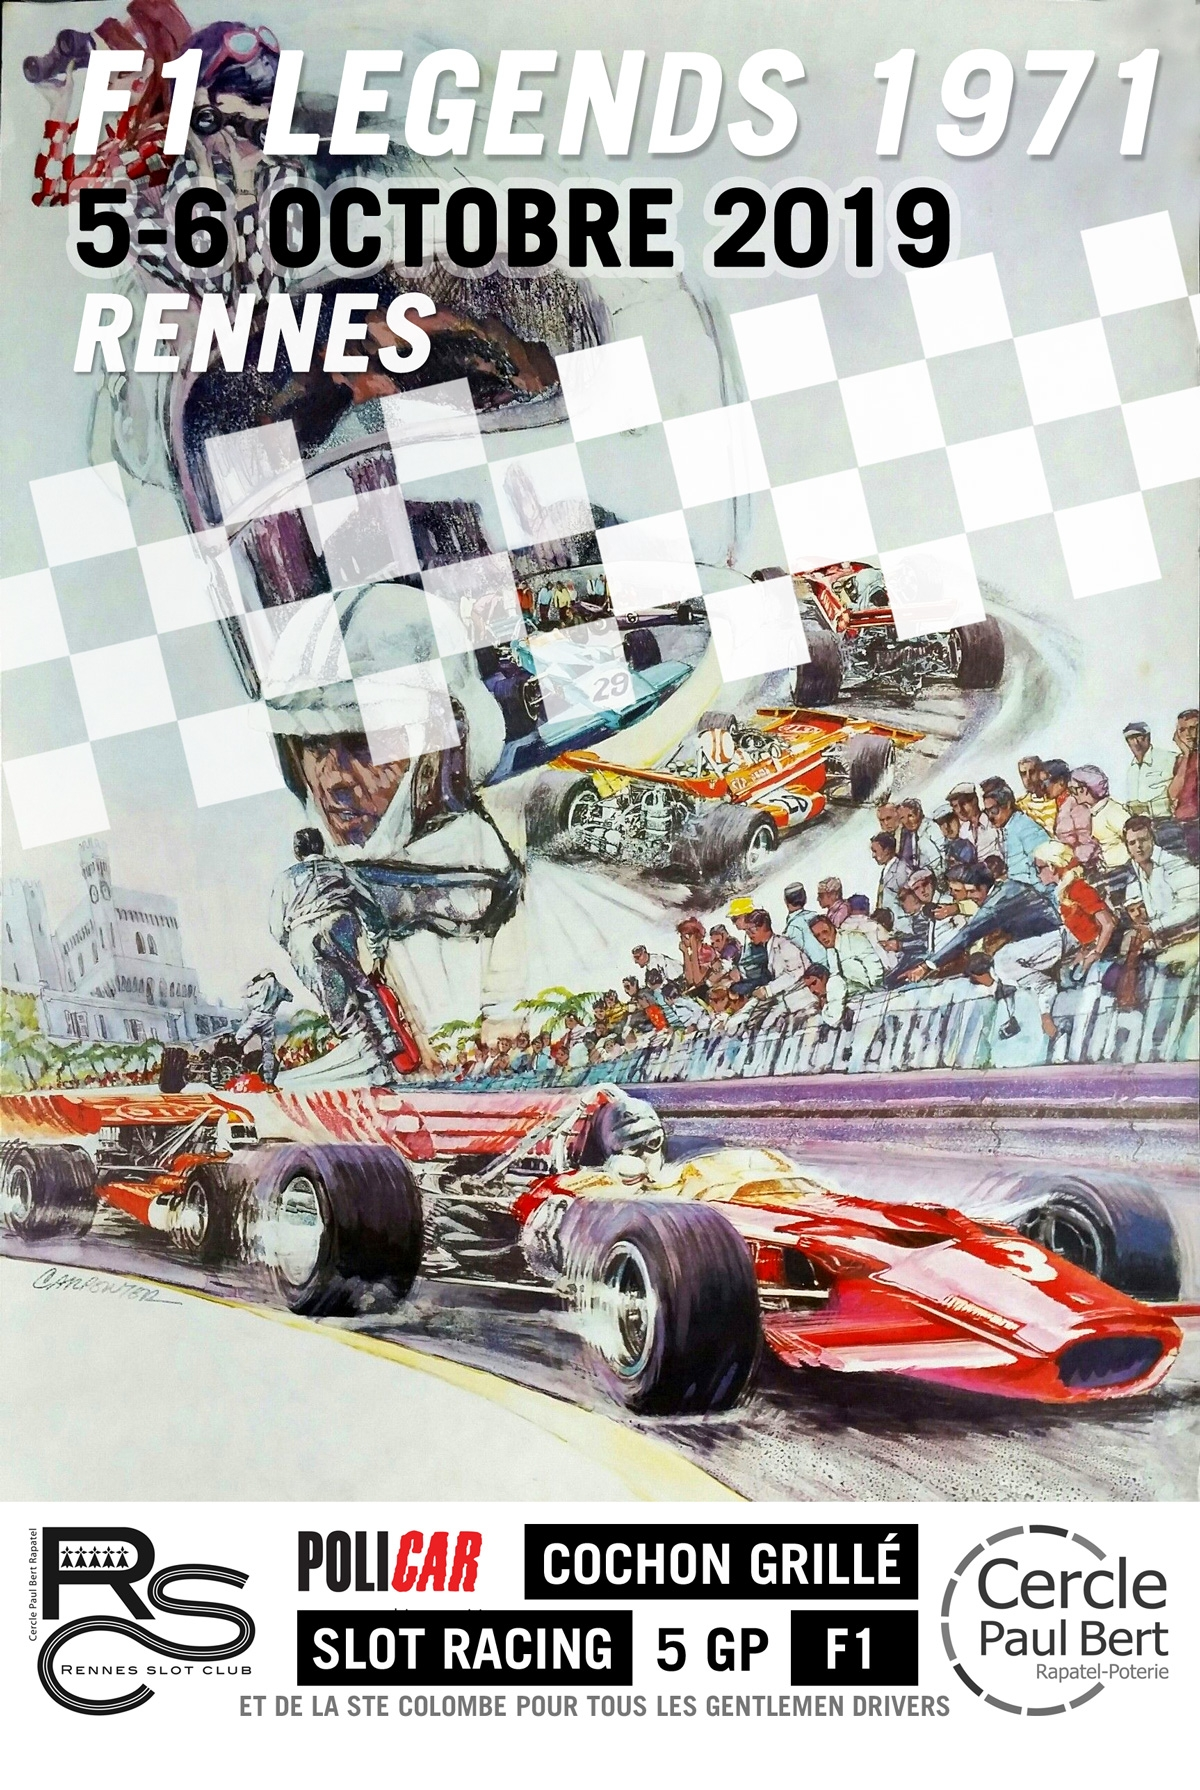 F1 Legend 1971 / 5-6 octobre 2019